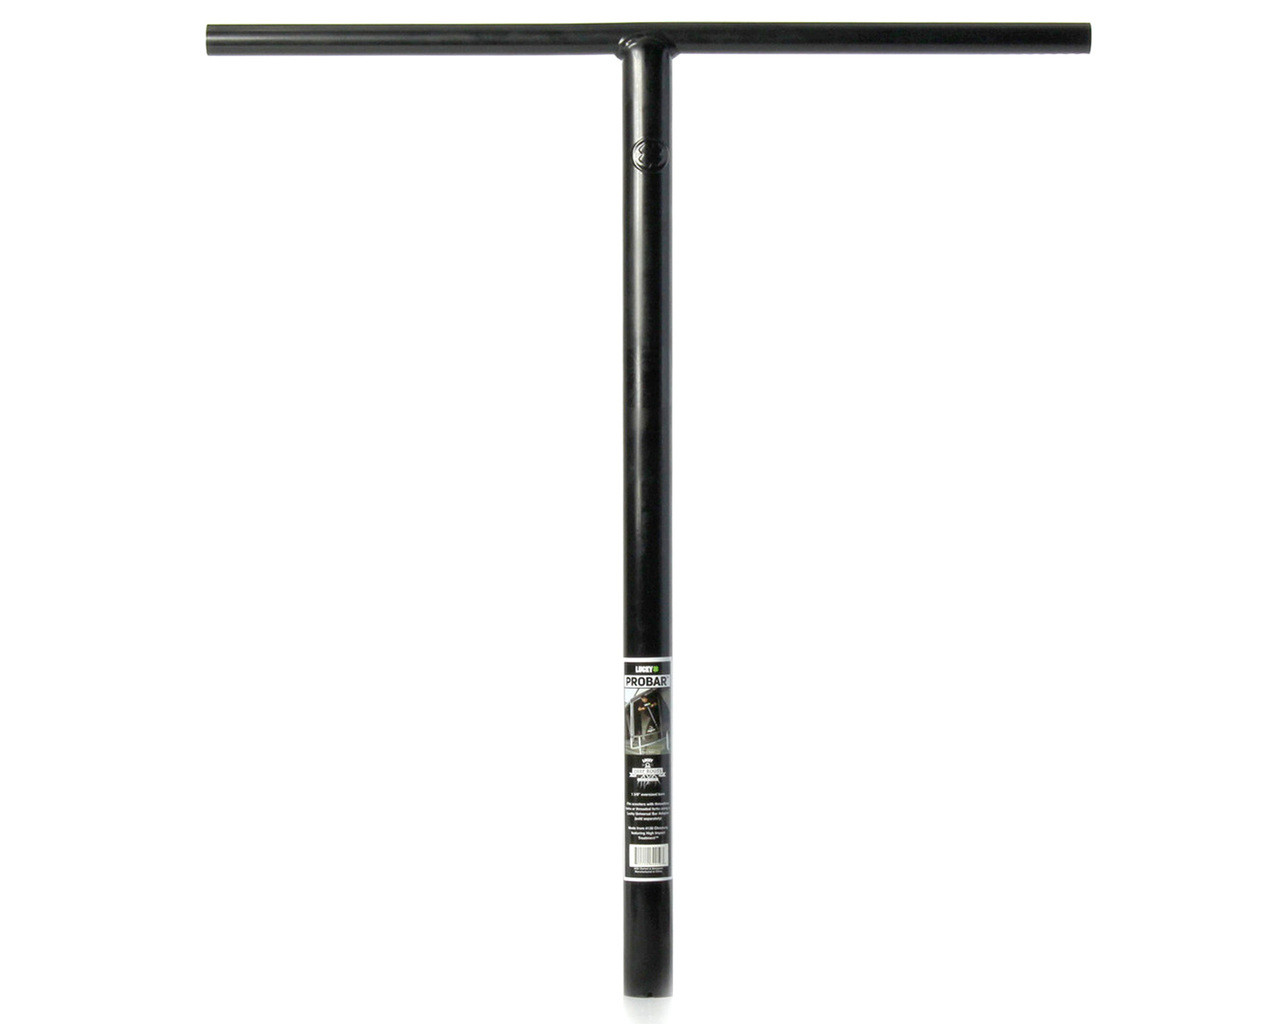 Lucky-DRC-Pro-Bar-Oversize-Pro-Scooter-Bars